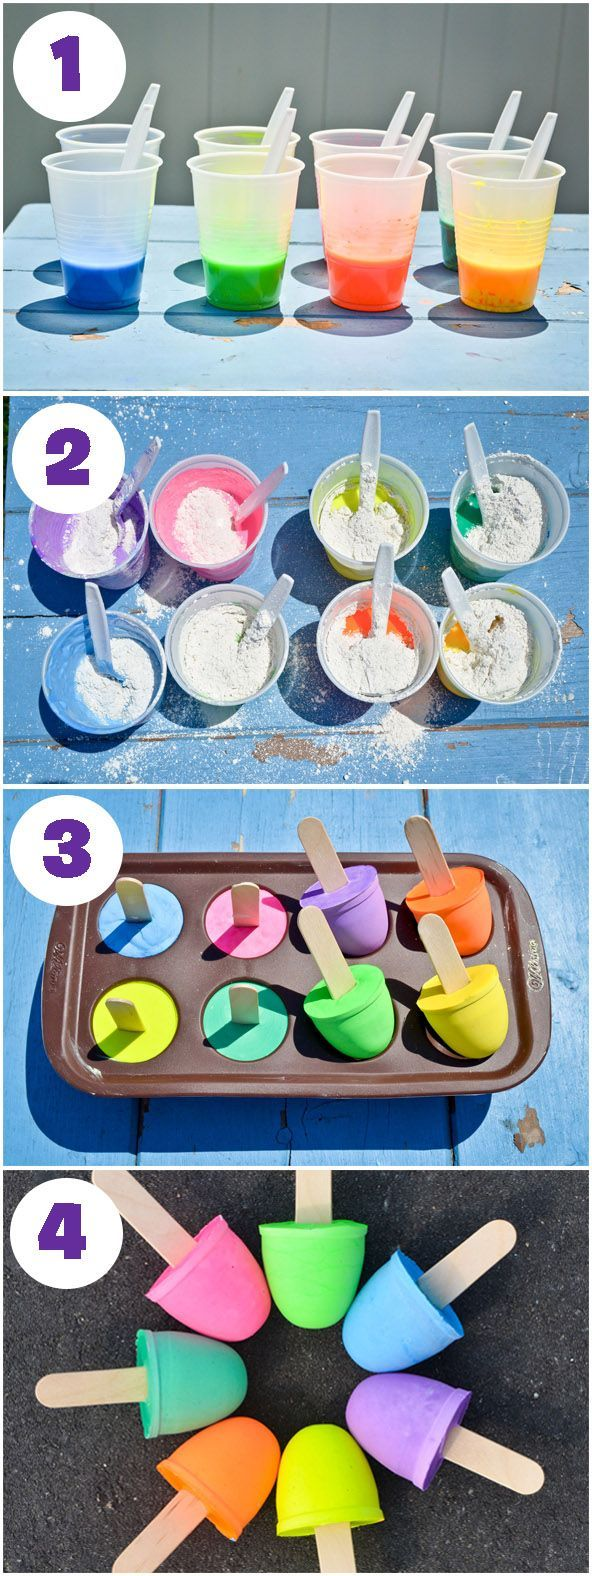 Give your budding graffiti artist the finest gear this spring with these DIY Sidewalk Chalk Pops. Your toddler will doodle for days with these homemade craft supplies. Have your kiddo take note that while these chalk pops may look like delicious lollipops, they're made for sketching, not snacking.: http://projectnursery.com/2015/05/diy-sidewalk-chalk-pops/